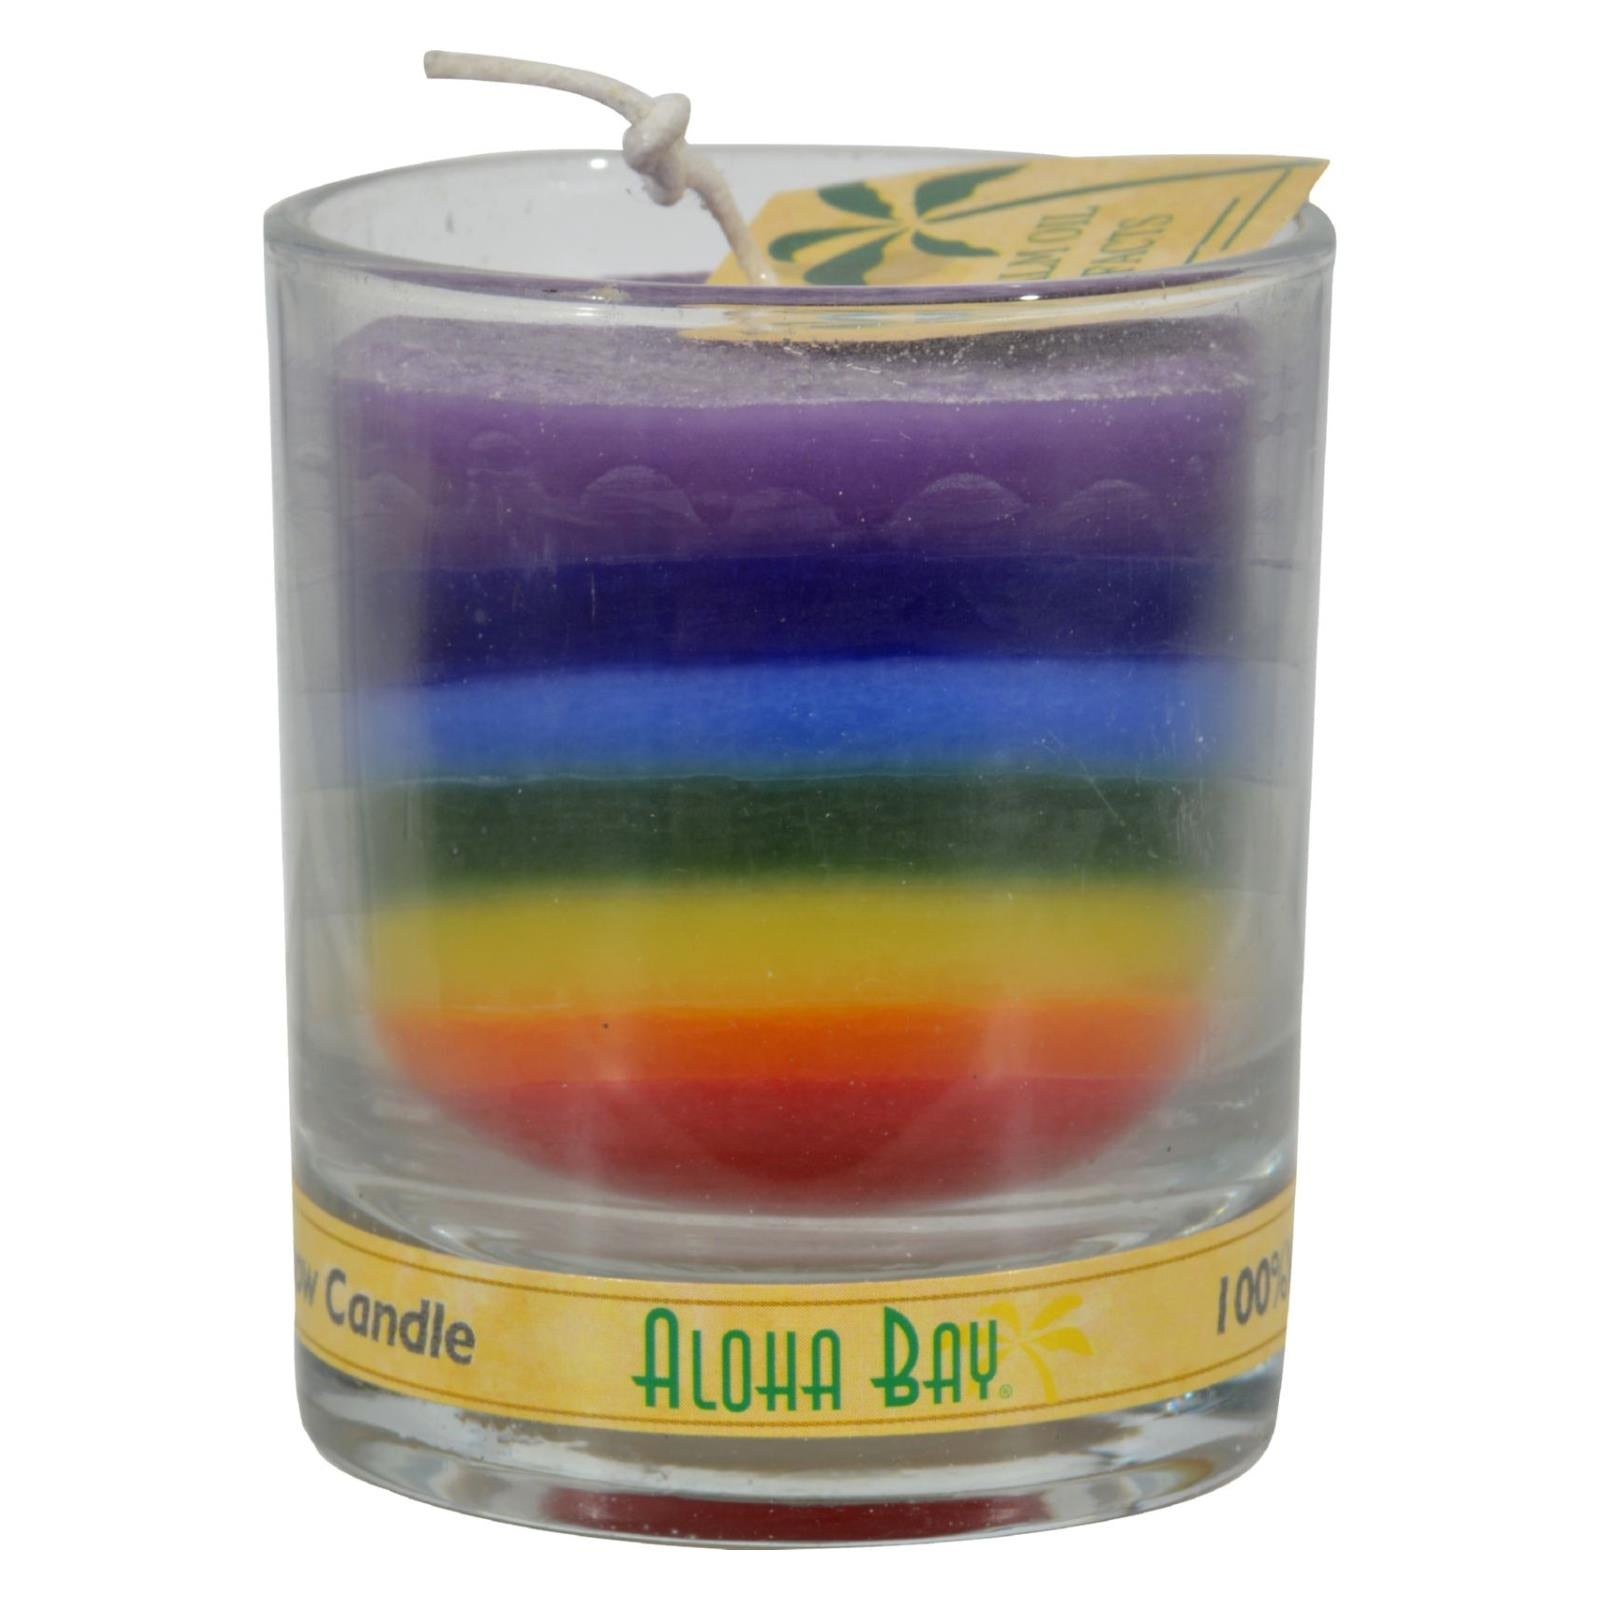 Buy Aloha Bay Votive Jar Candle - Unscented Rainbow - Case of 12 - 2.5 oz - Jar Candles from Veroeco.com